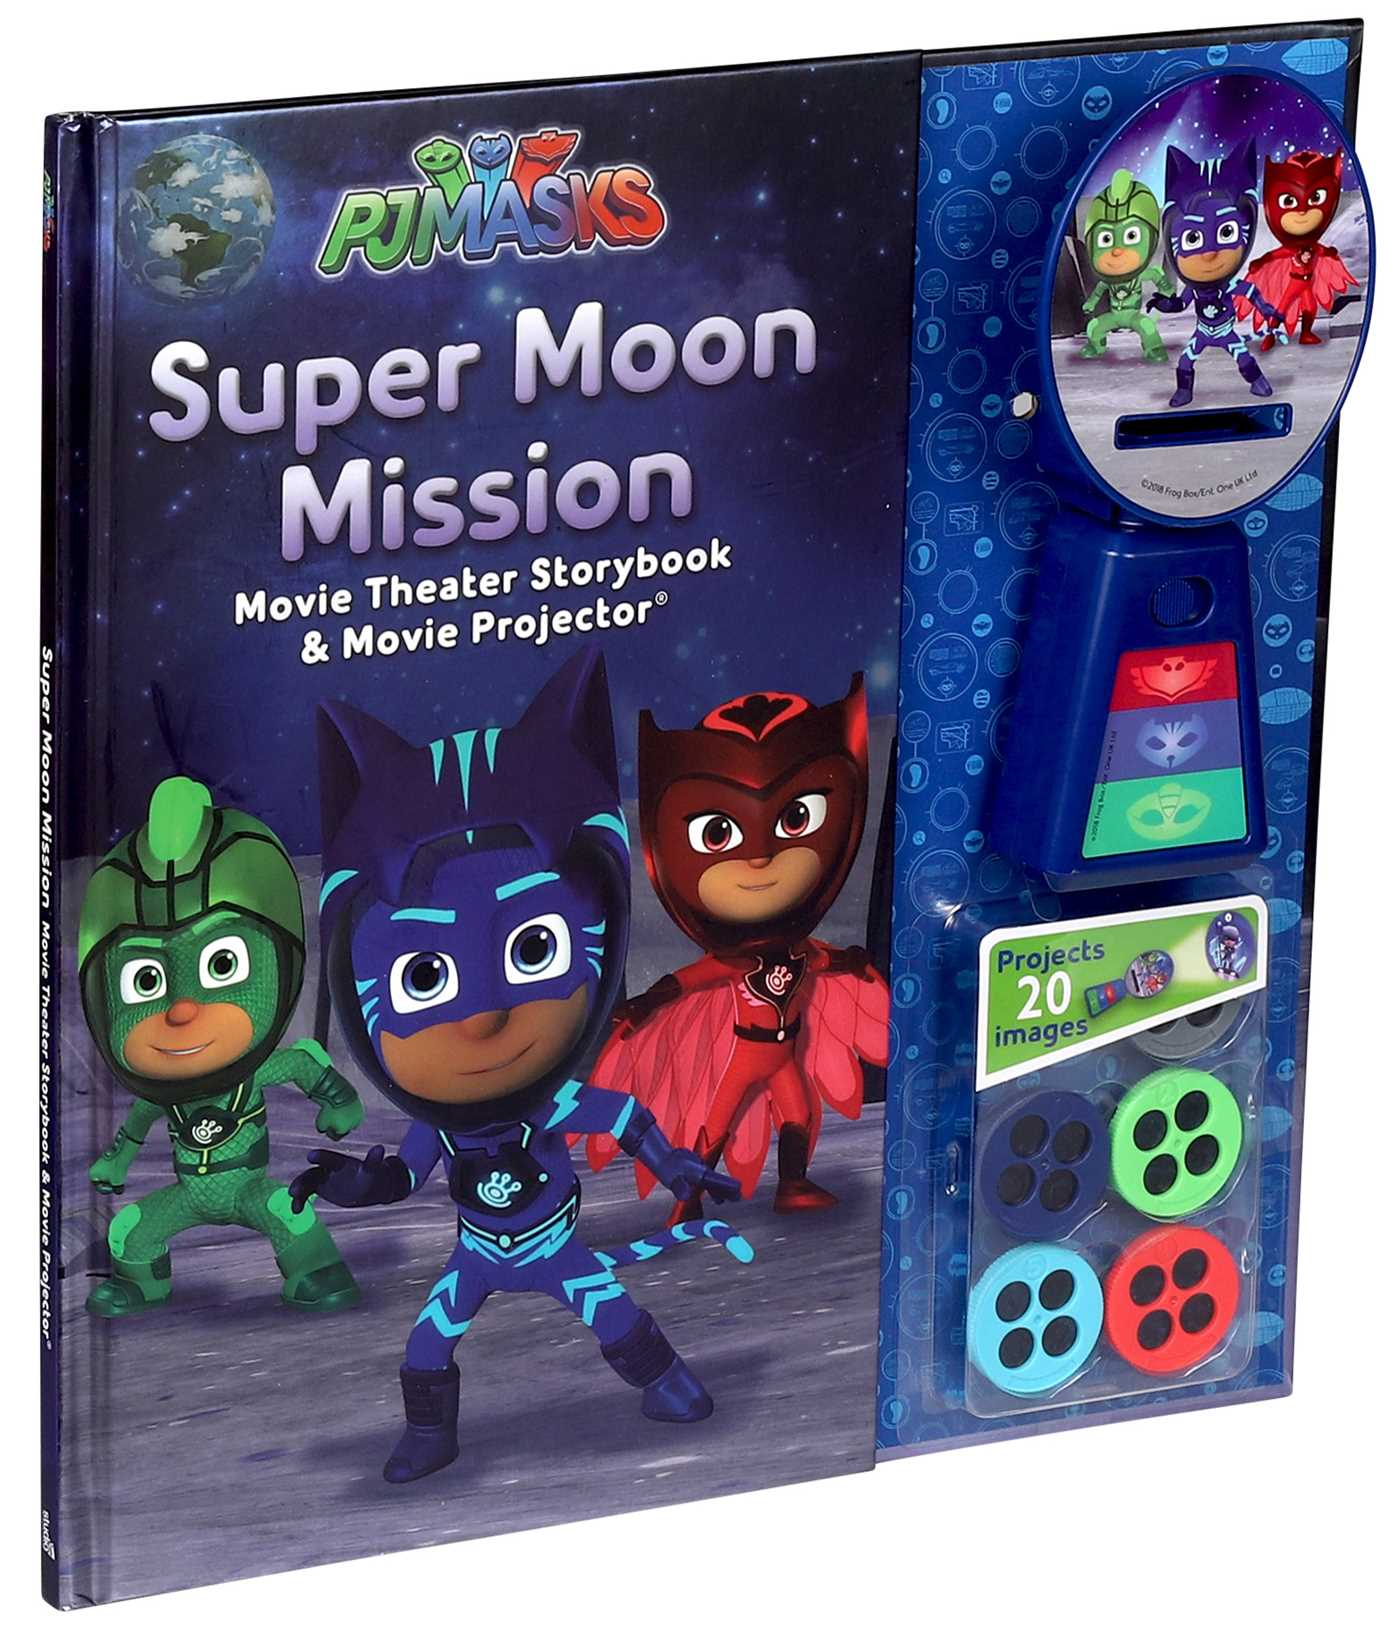 pj masks super moon mission movie theater storybook book by pj